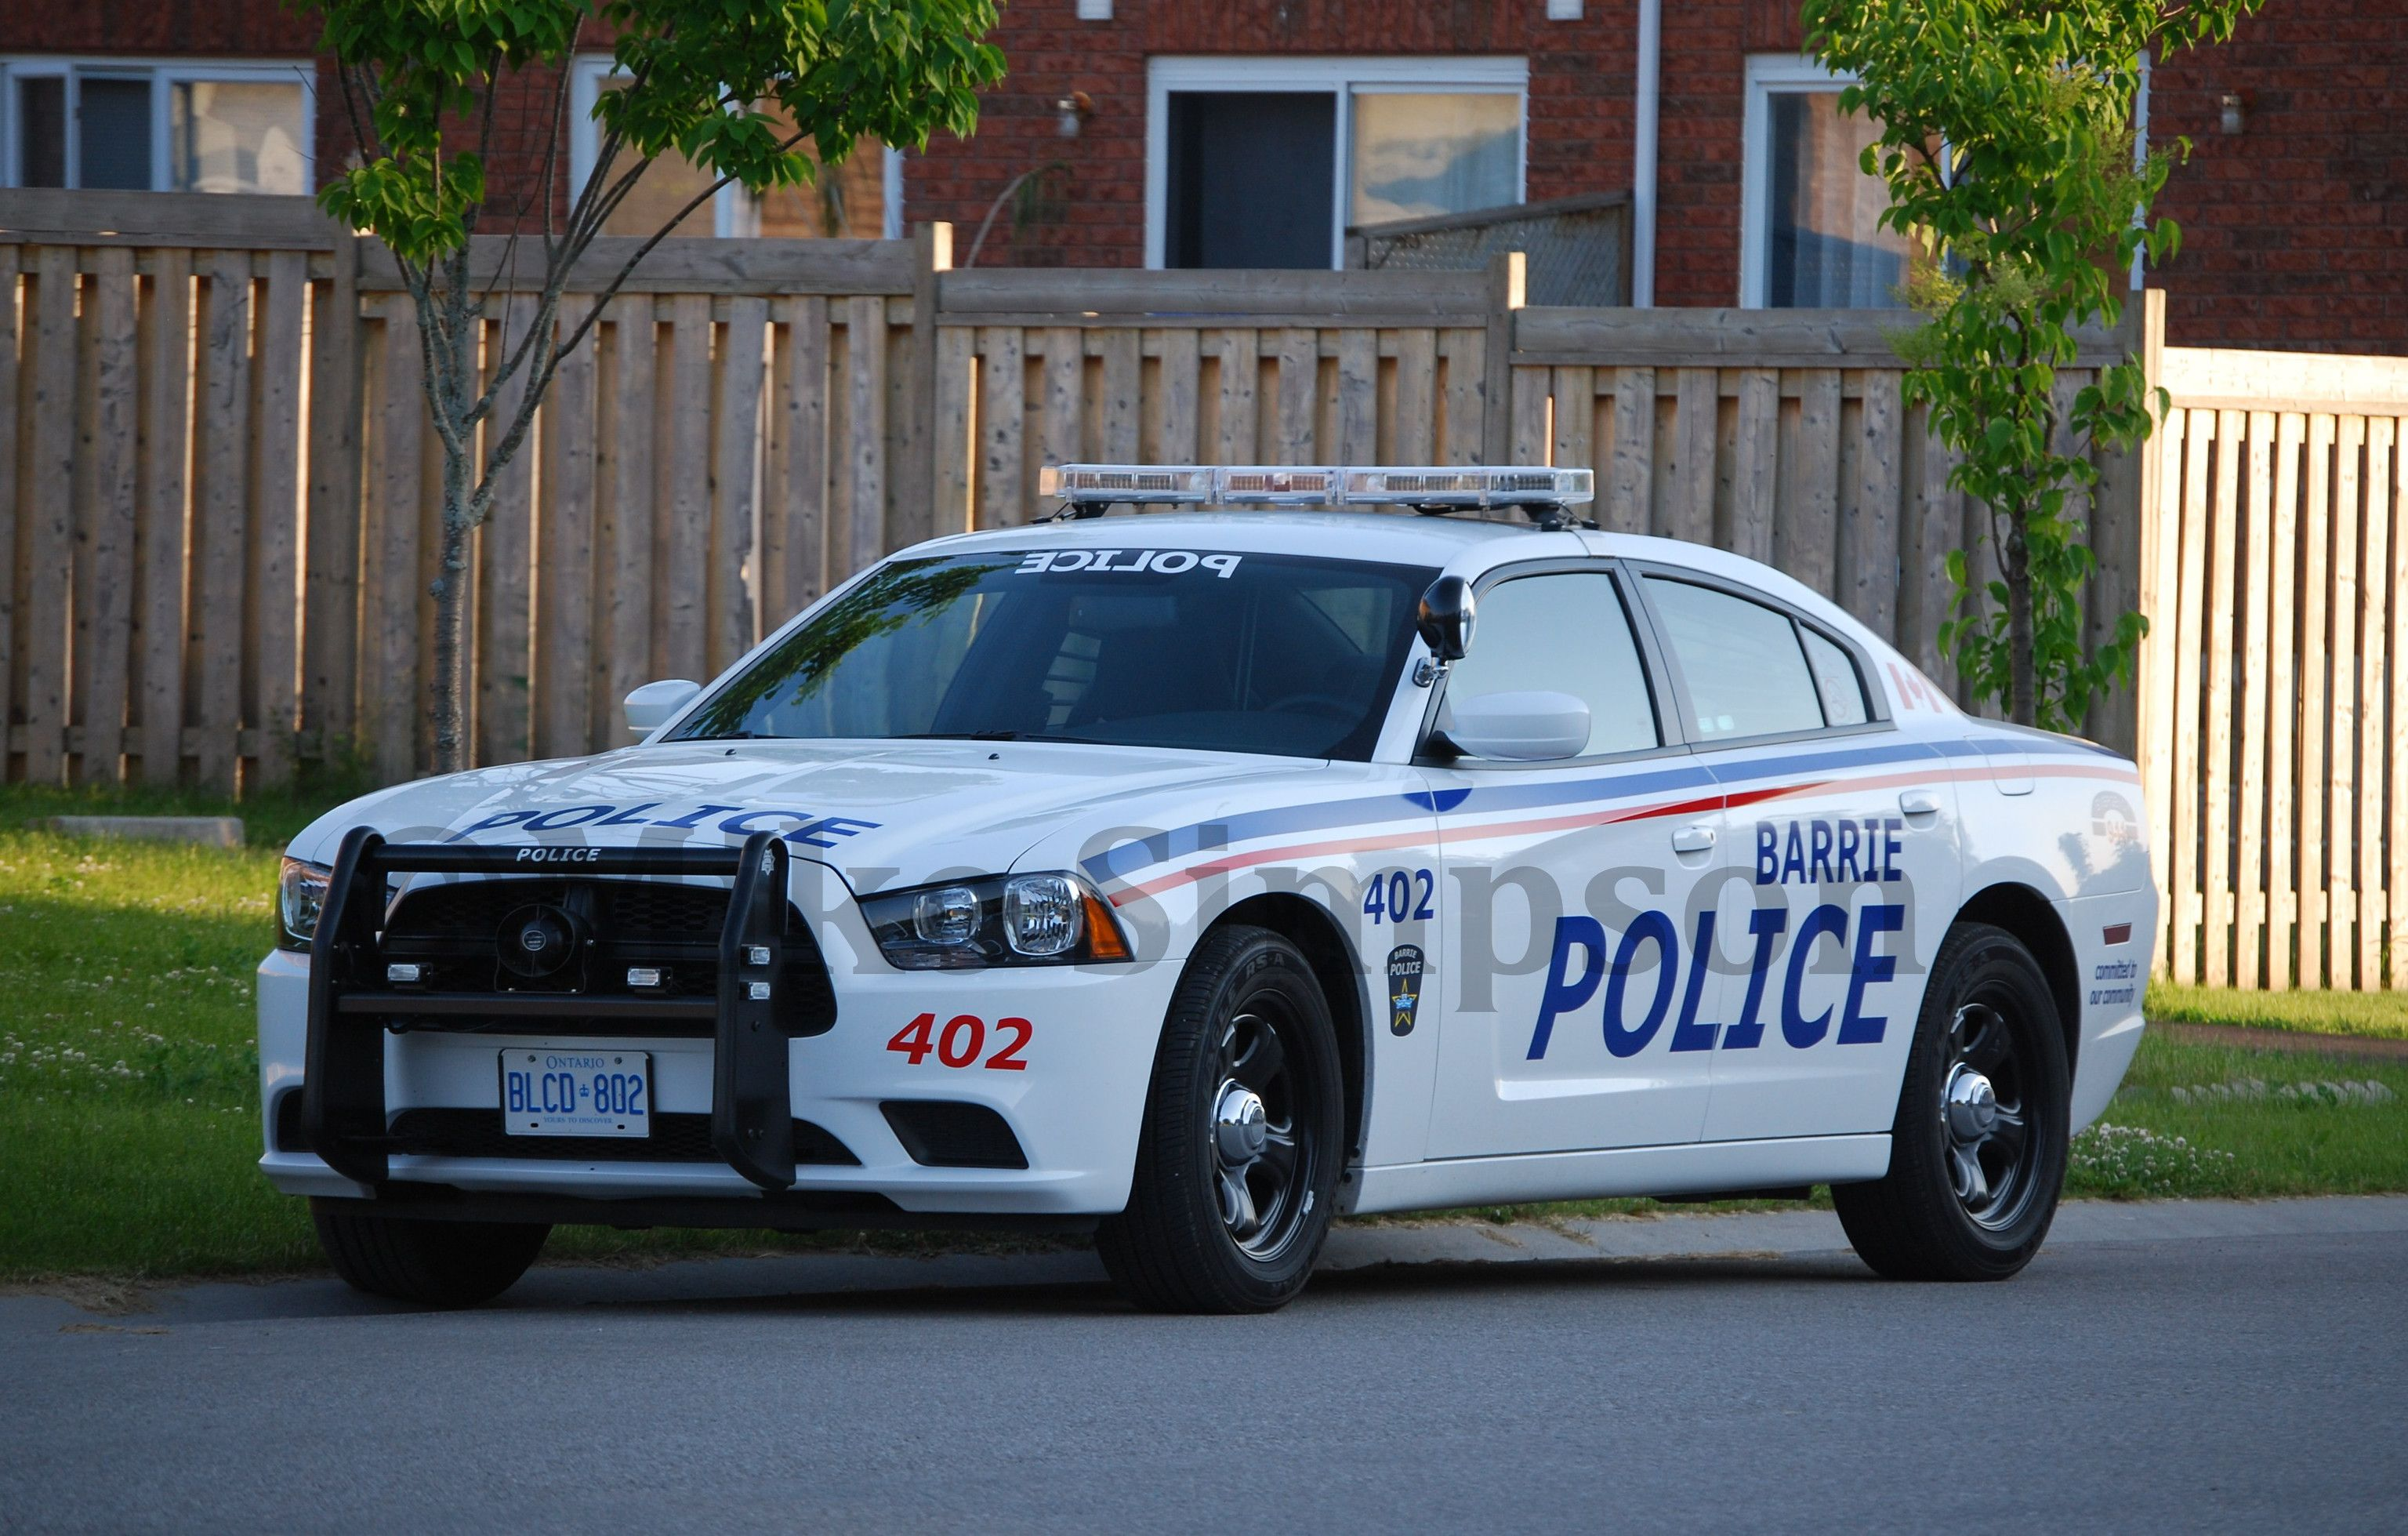 Barrie Police 402 In 2021 Police Cars Police Emergency Vehicles